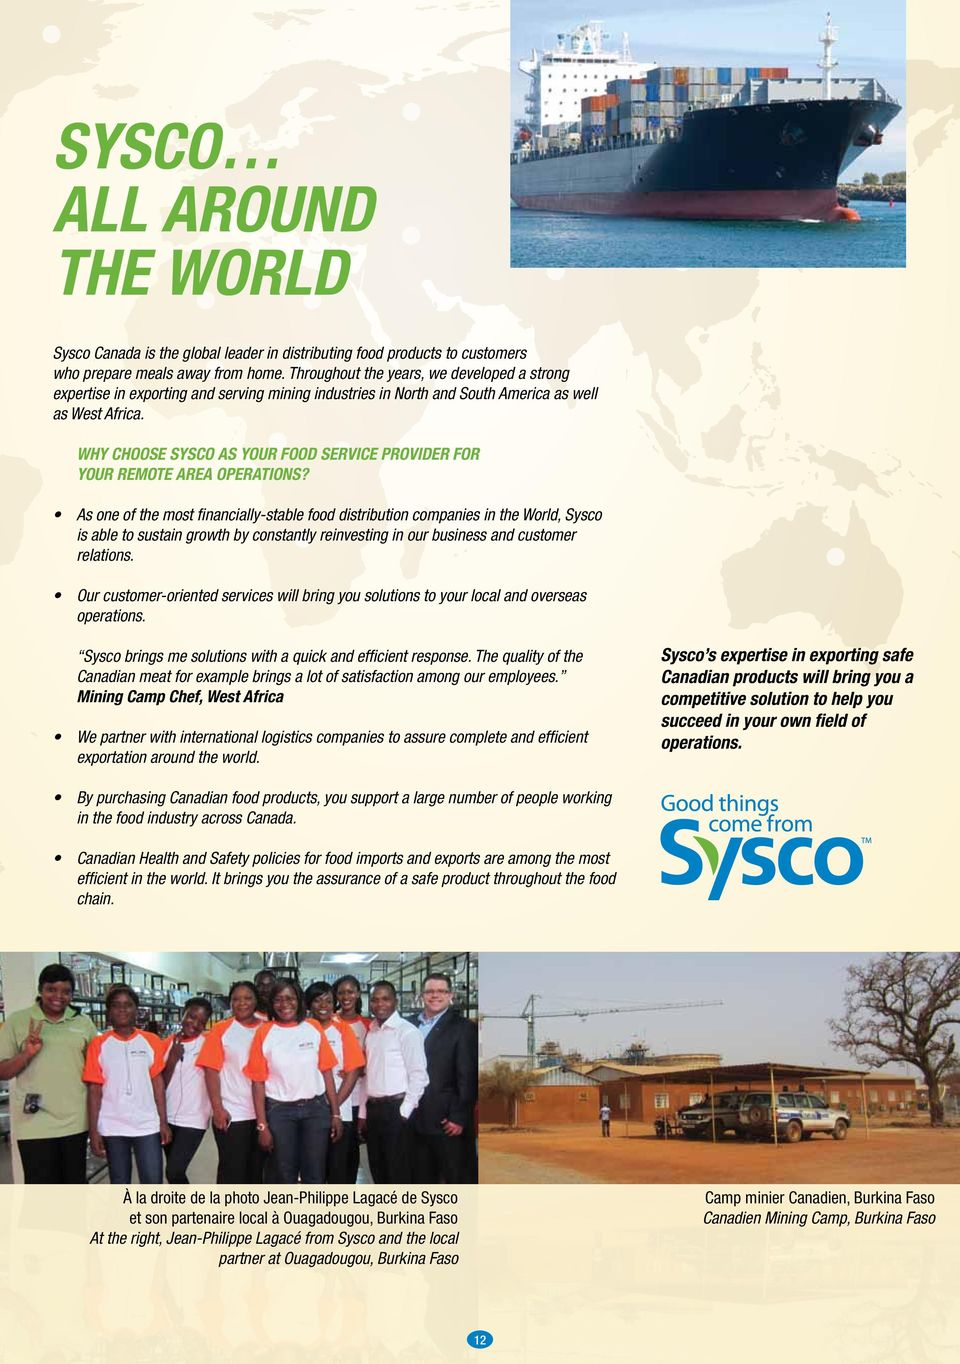 Why choose Sysco as your food service provider for your remote area operations?